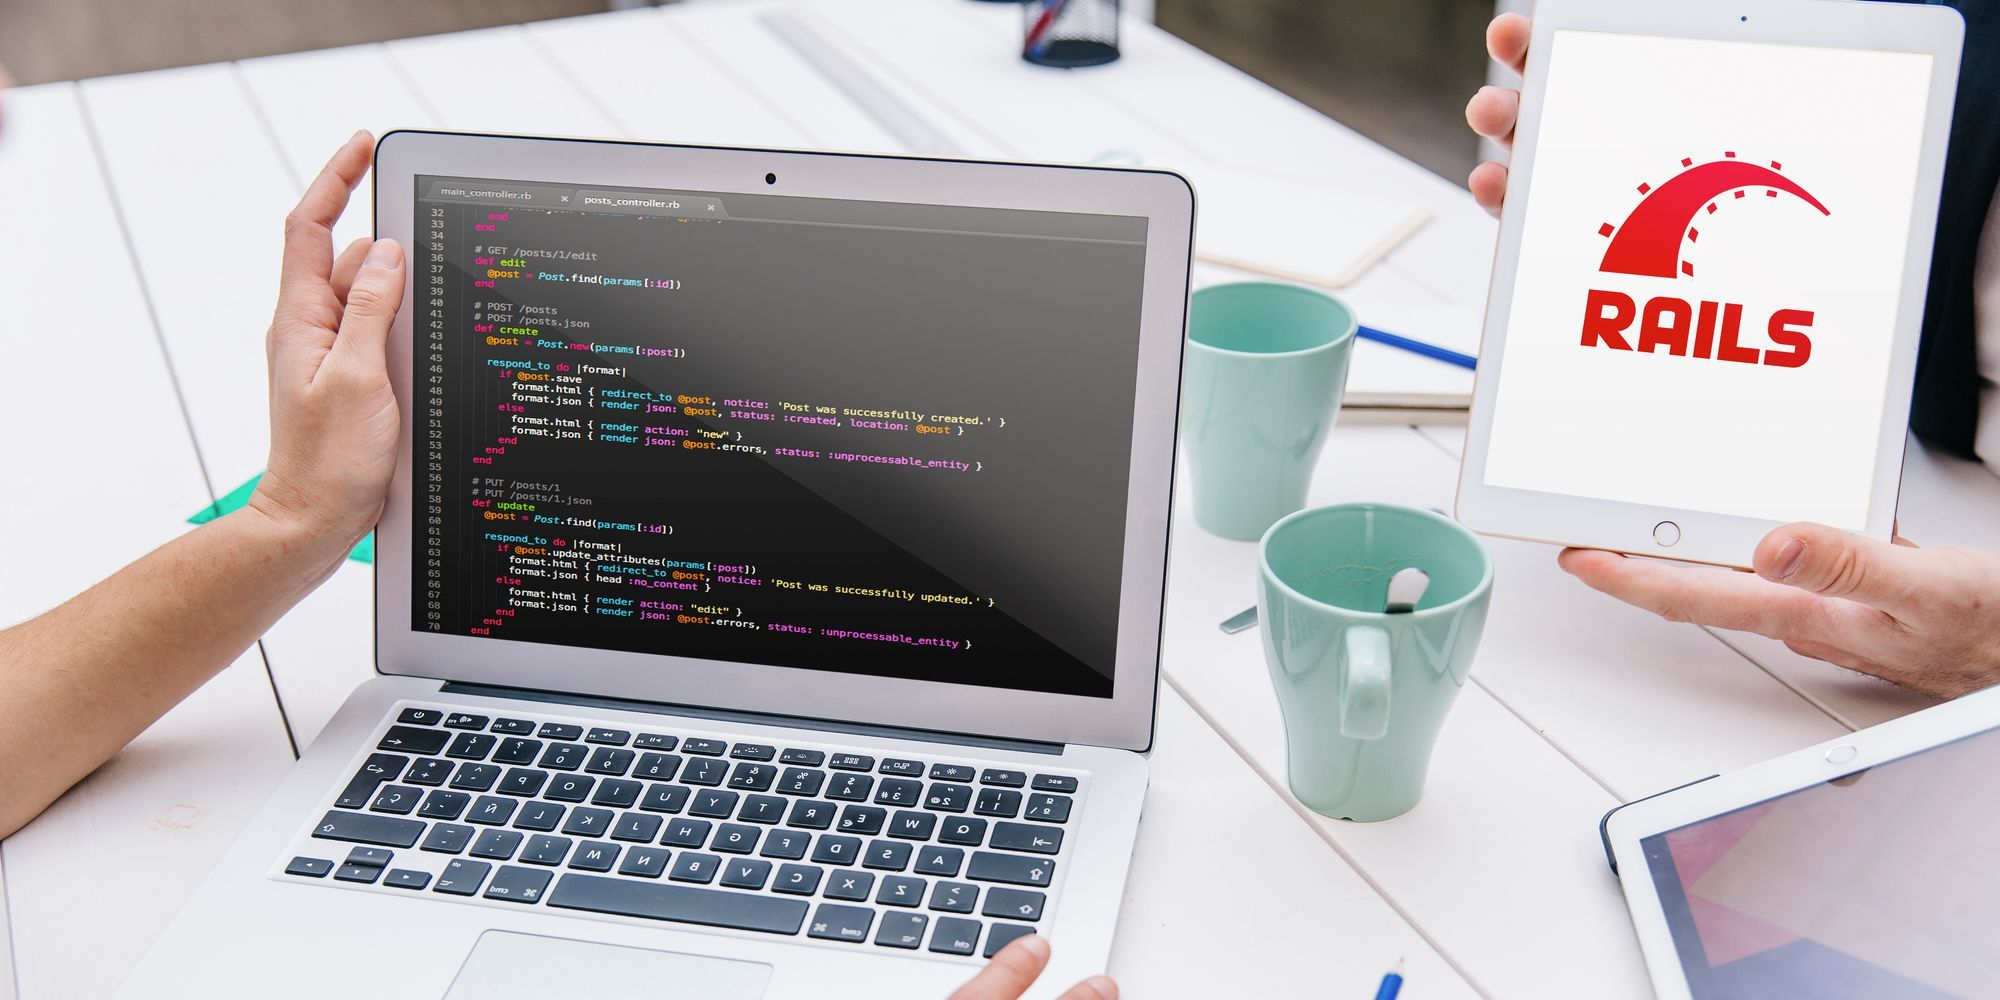 Develop PC with Rails Software